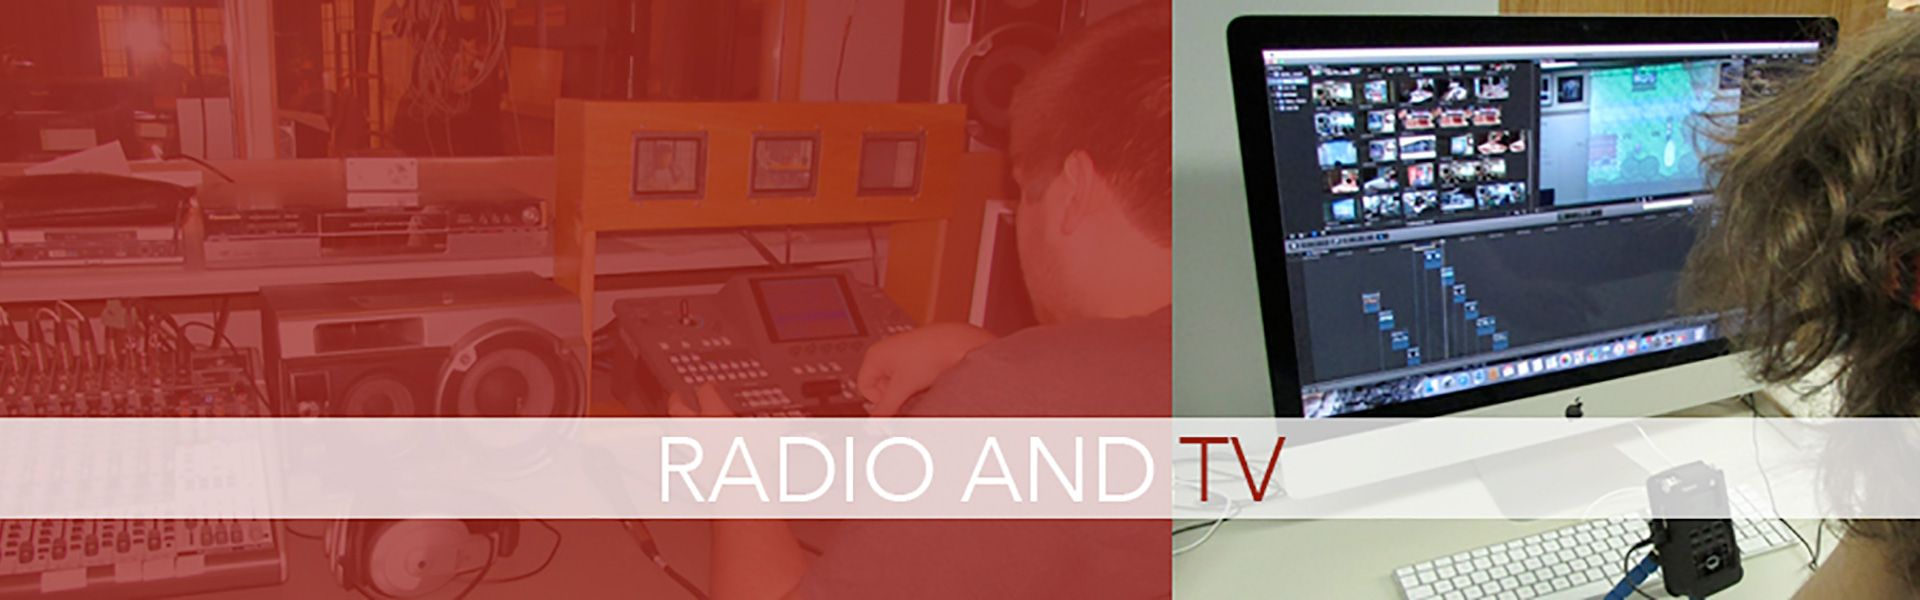 Radio TV Web Graphic